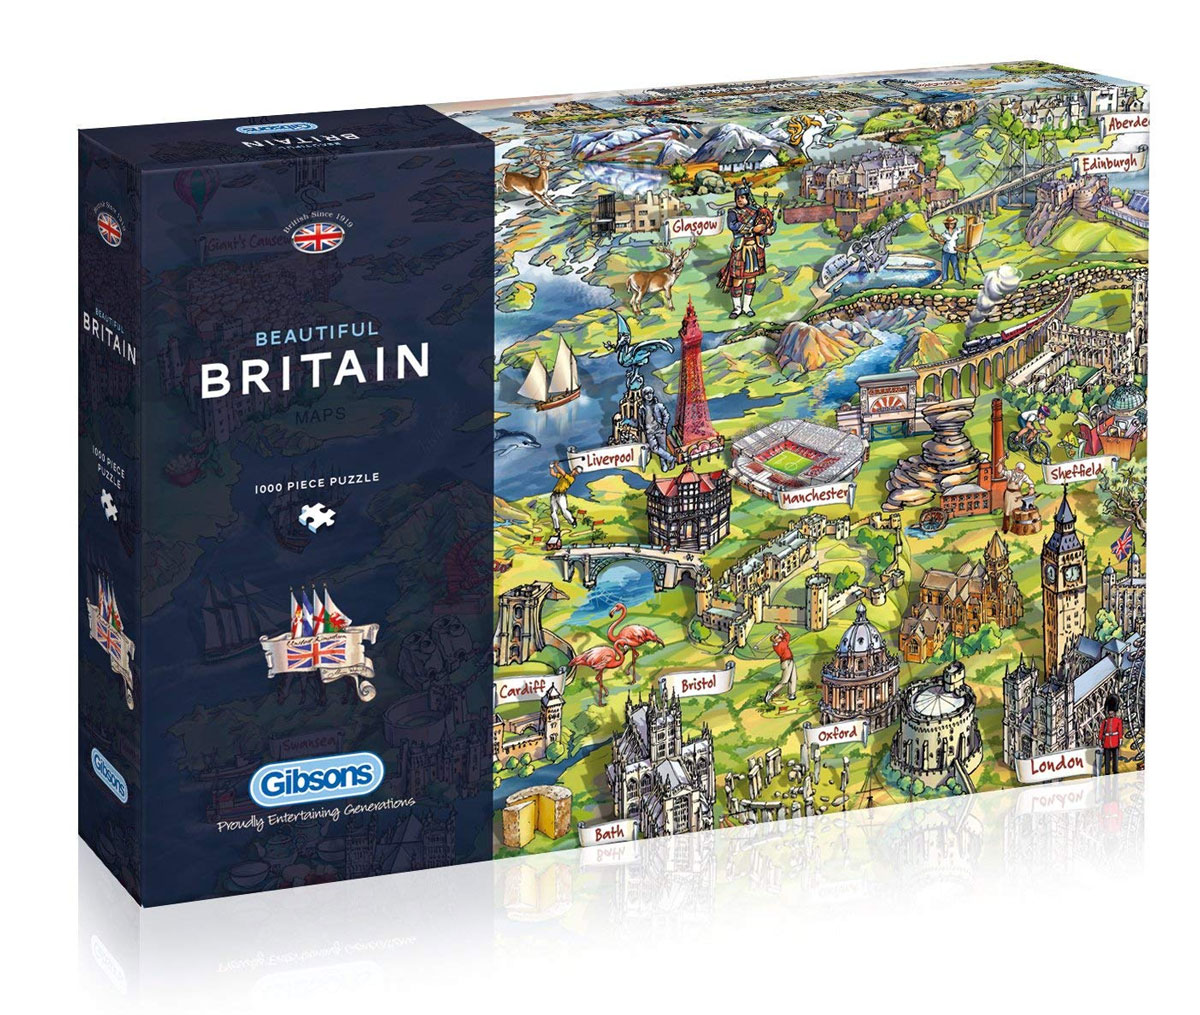 BEAUTIFUL BRITAIN 1000PC PUZZLE